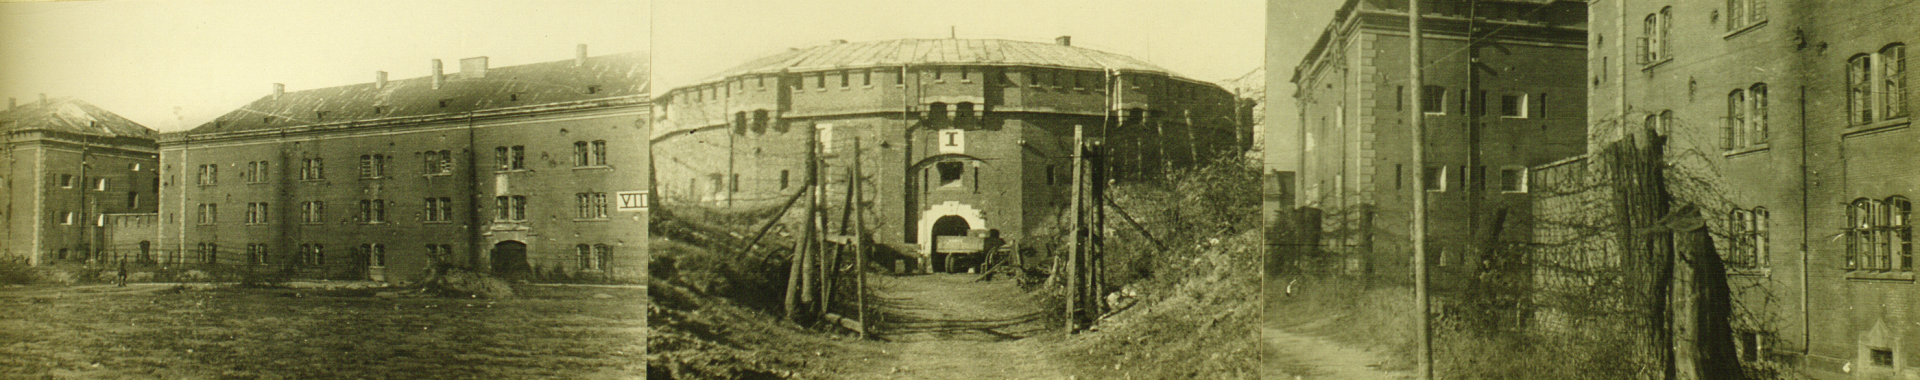 Stalag 328 on the Citadel: Topography of Captivity